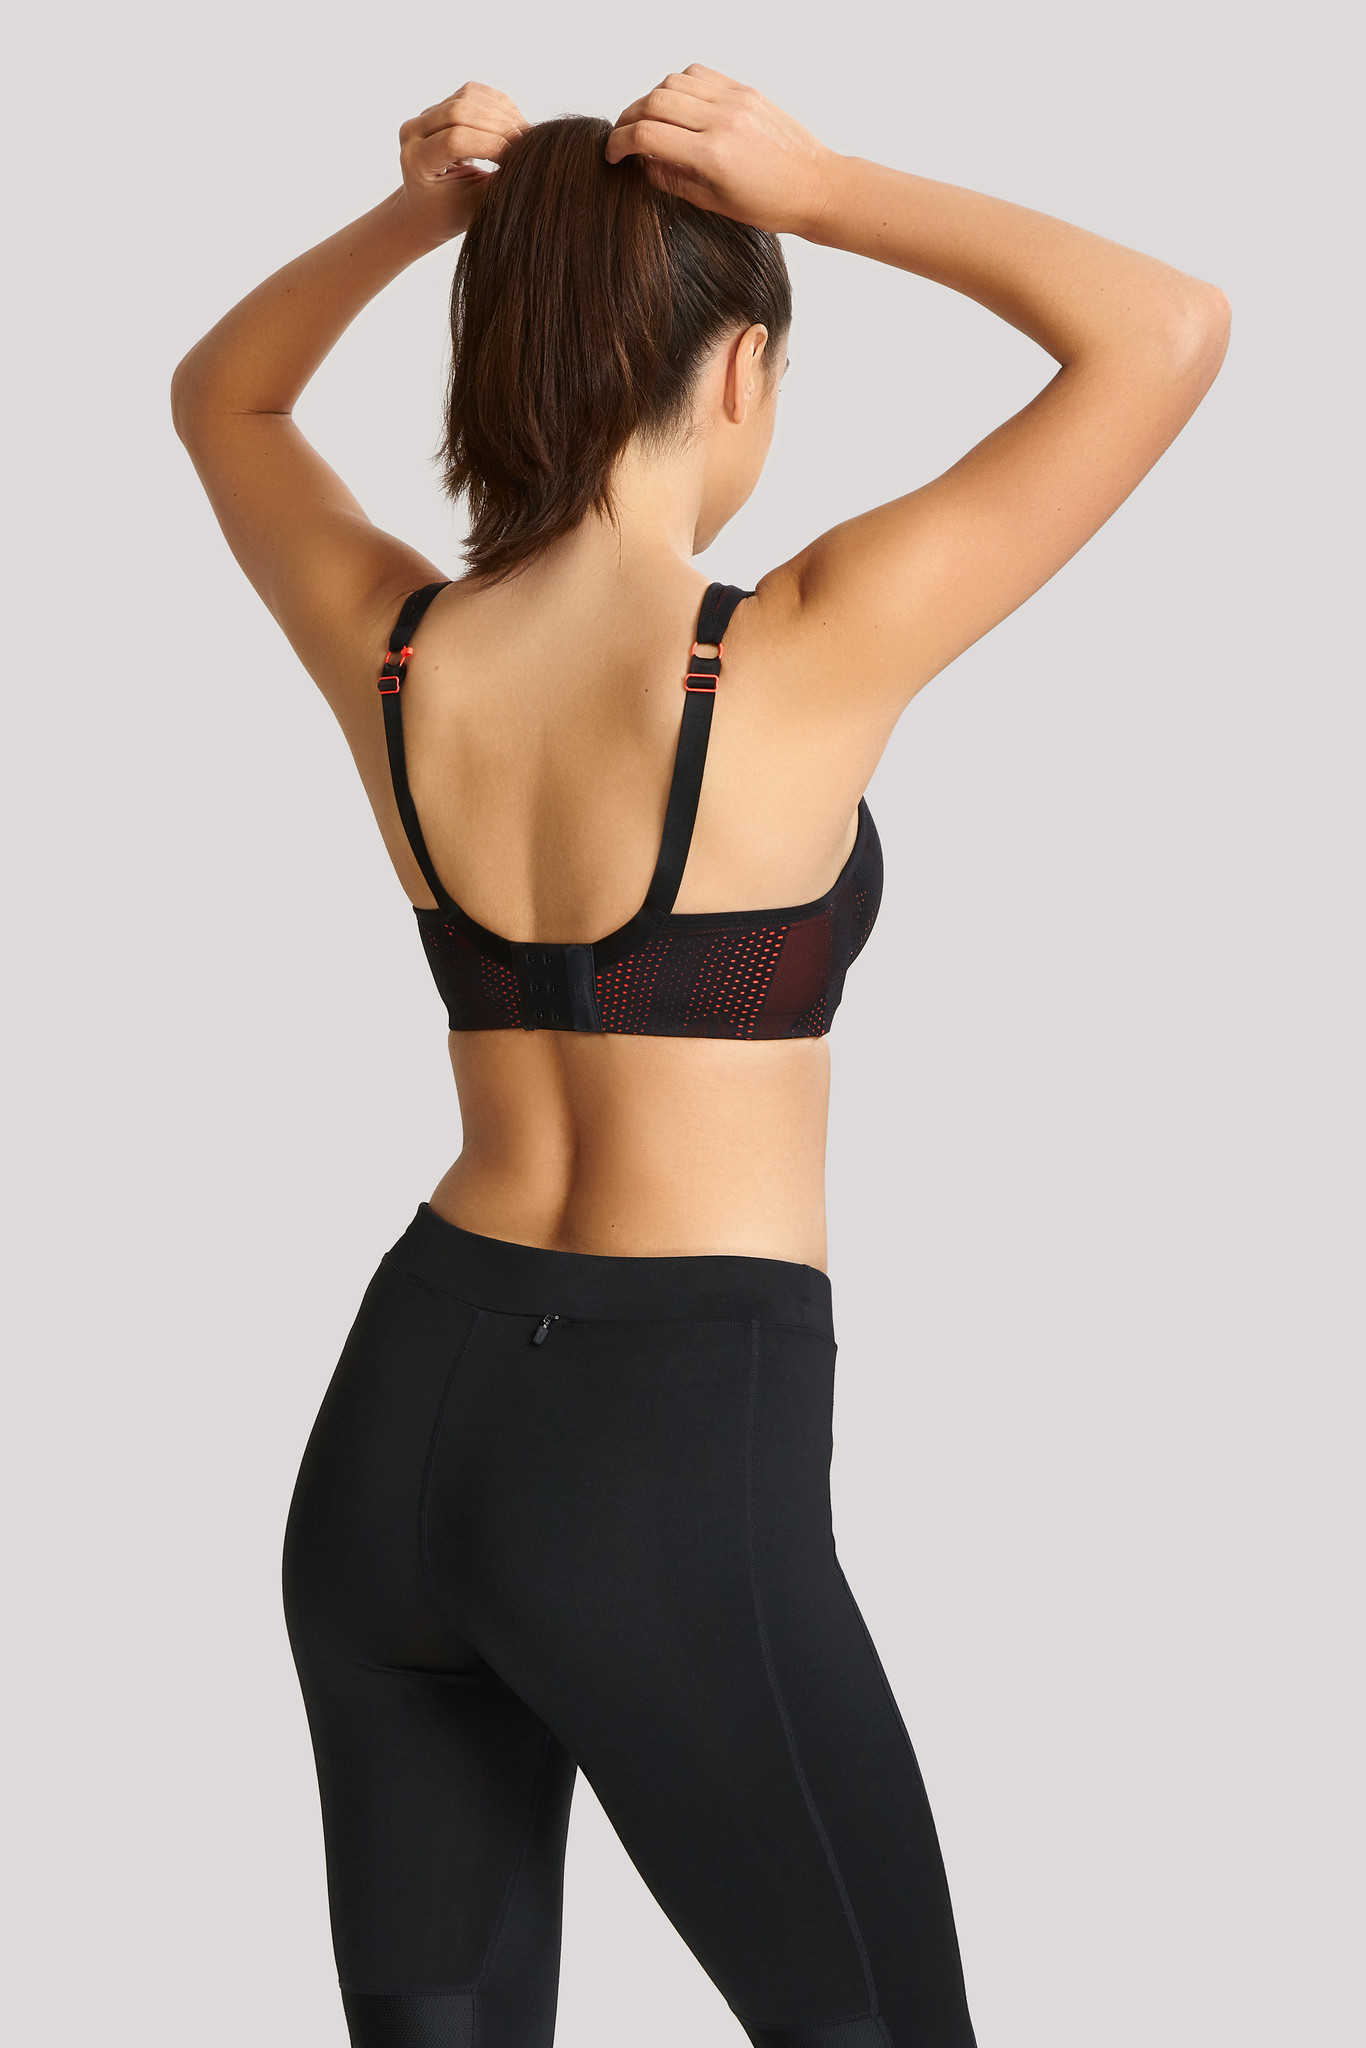 Panache Wired Sports Bra  (Seasonal)